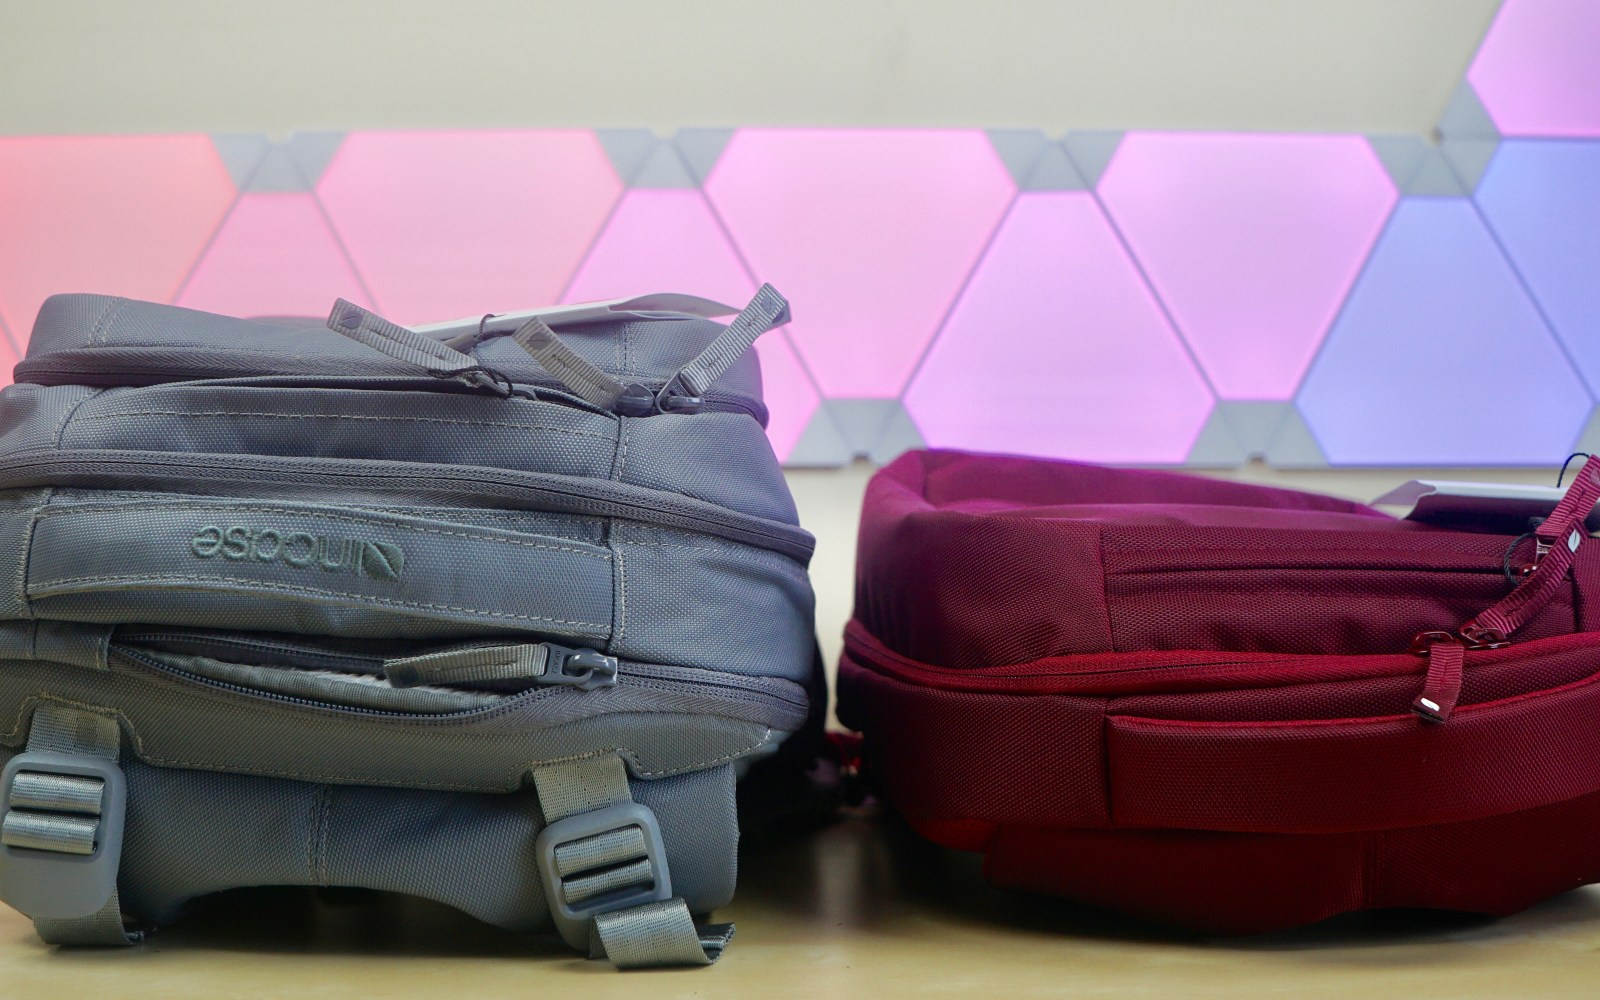 Hands-on: Incase ICON and new ICON Lite backpacks fit 15-inch MacBooks, all iPads, and much more